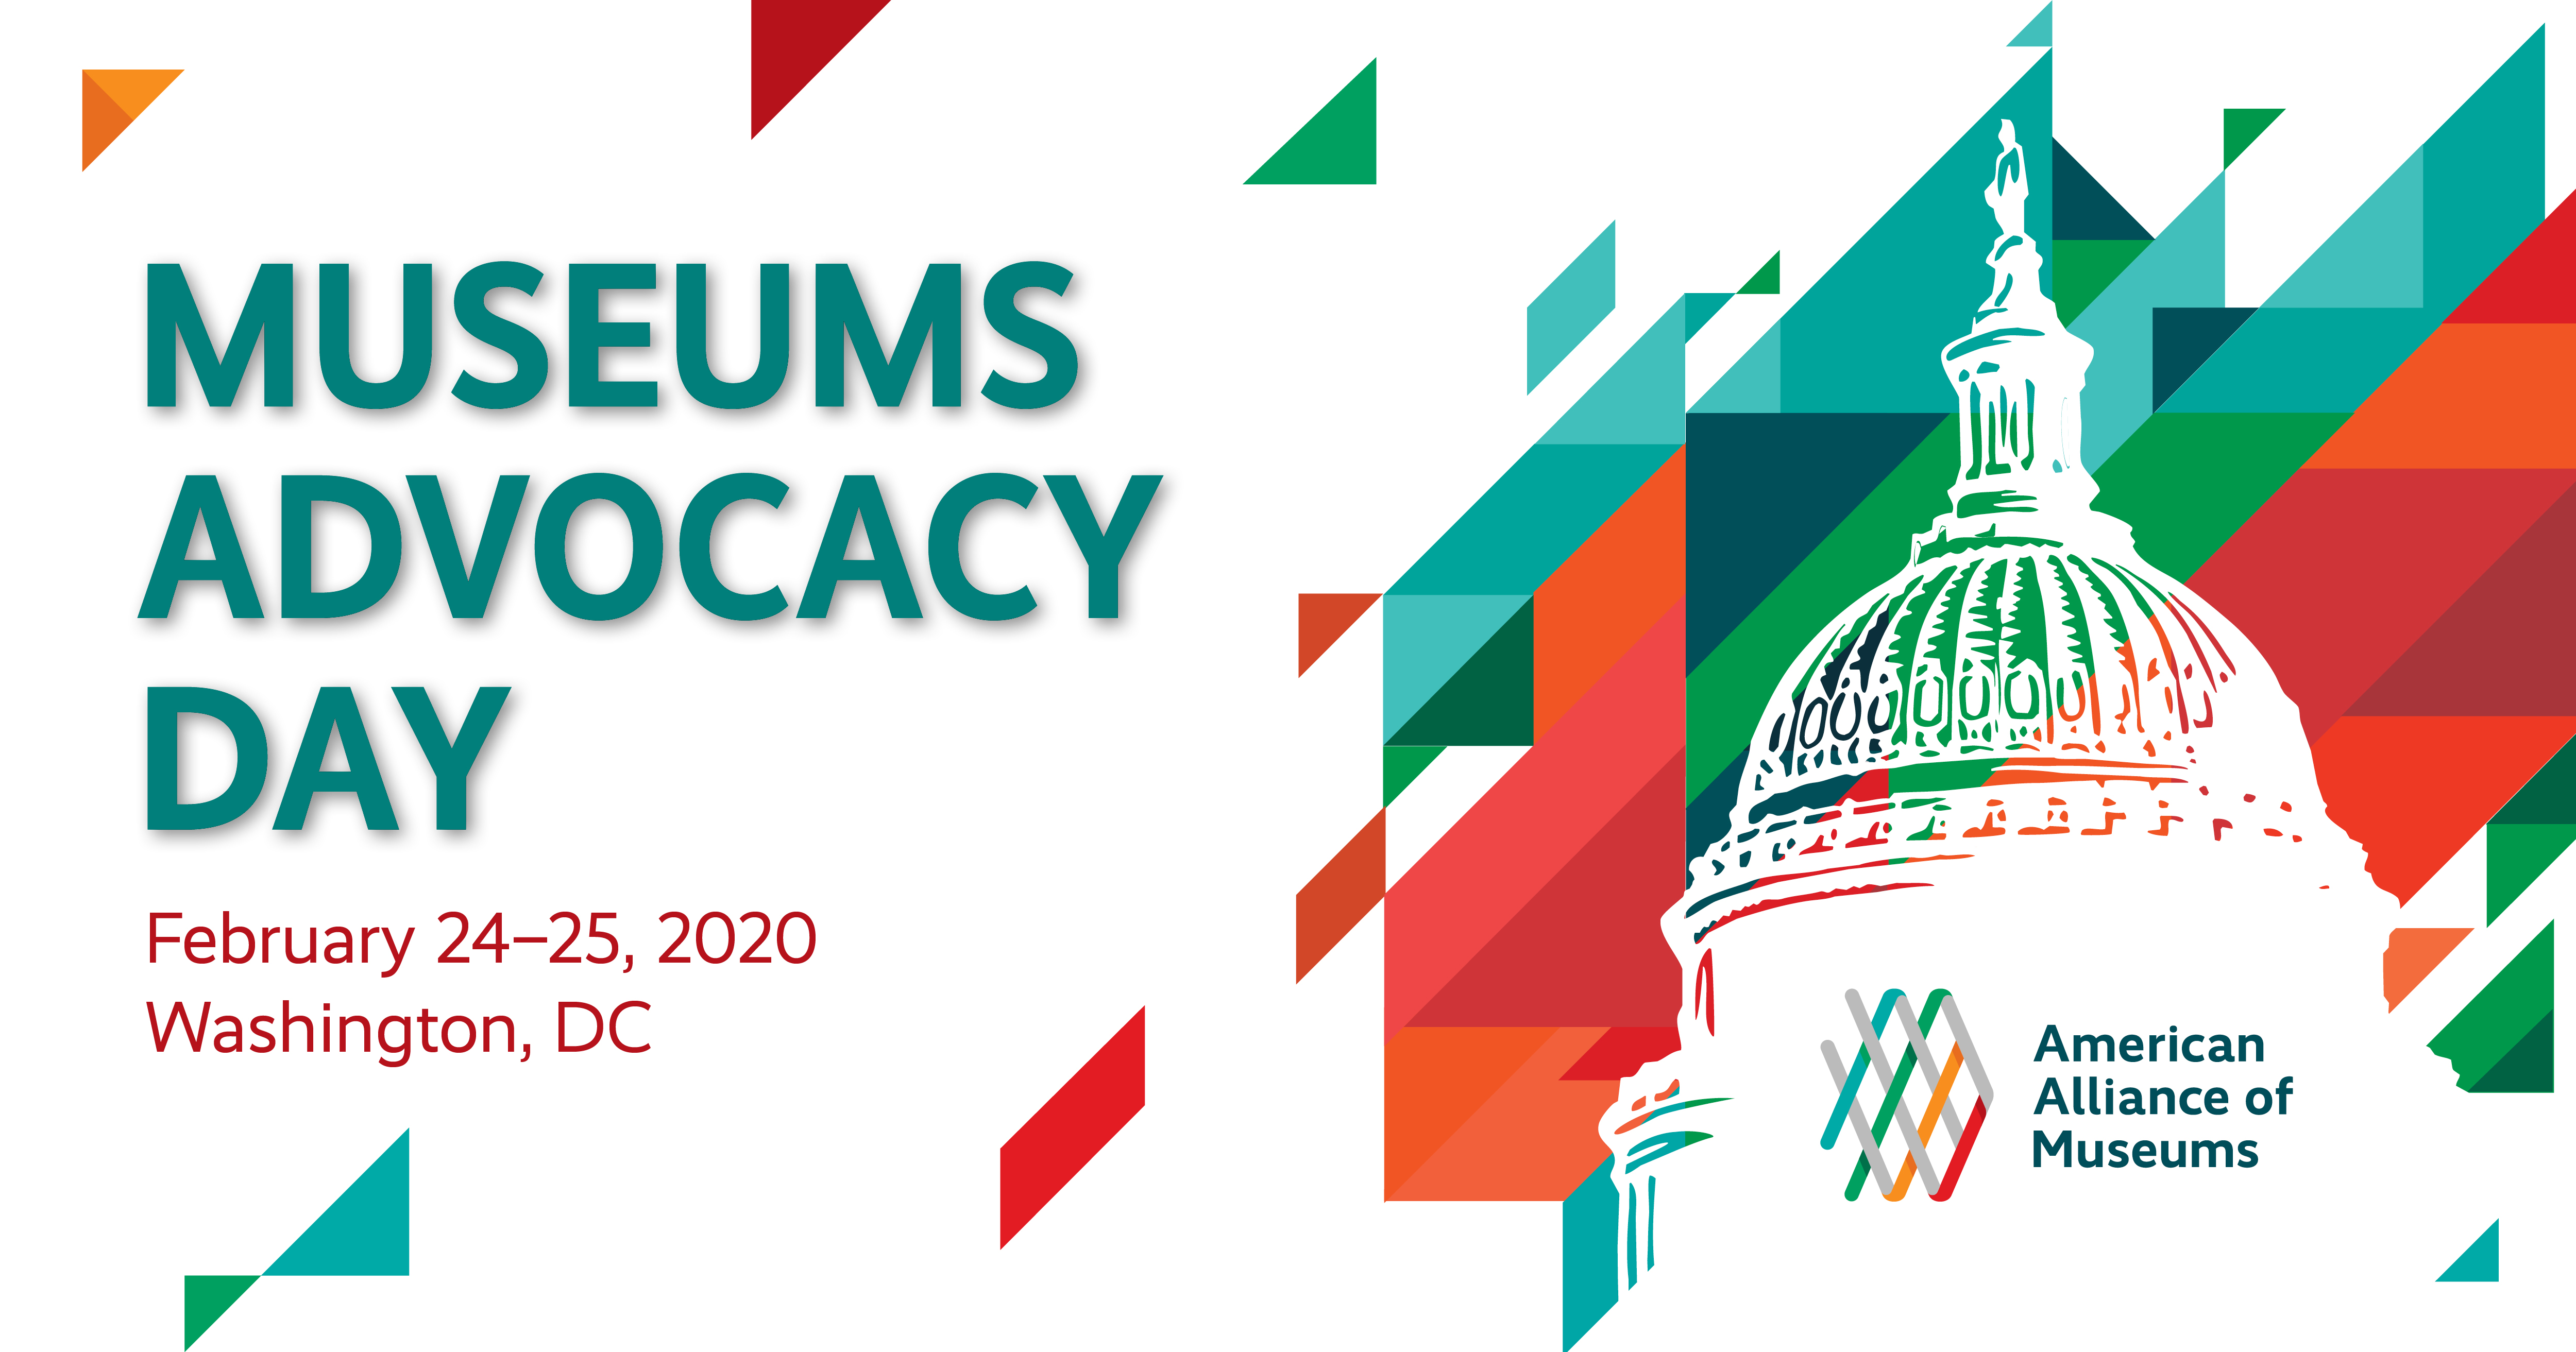 Museums Advocacy Day 2020 Graphic